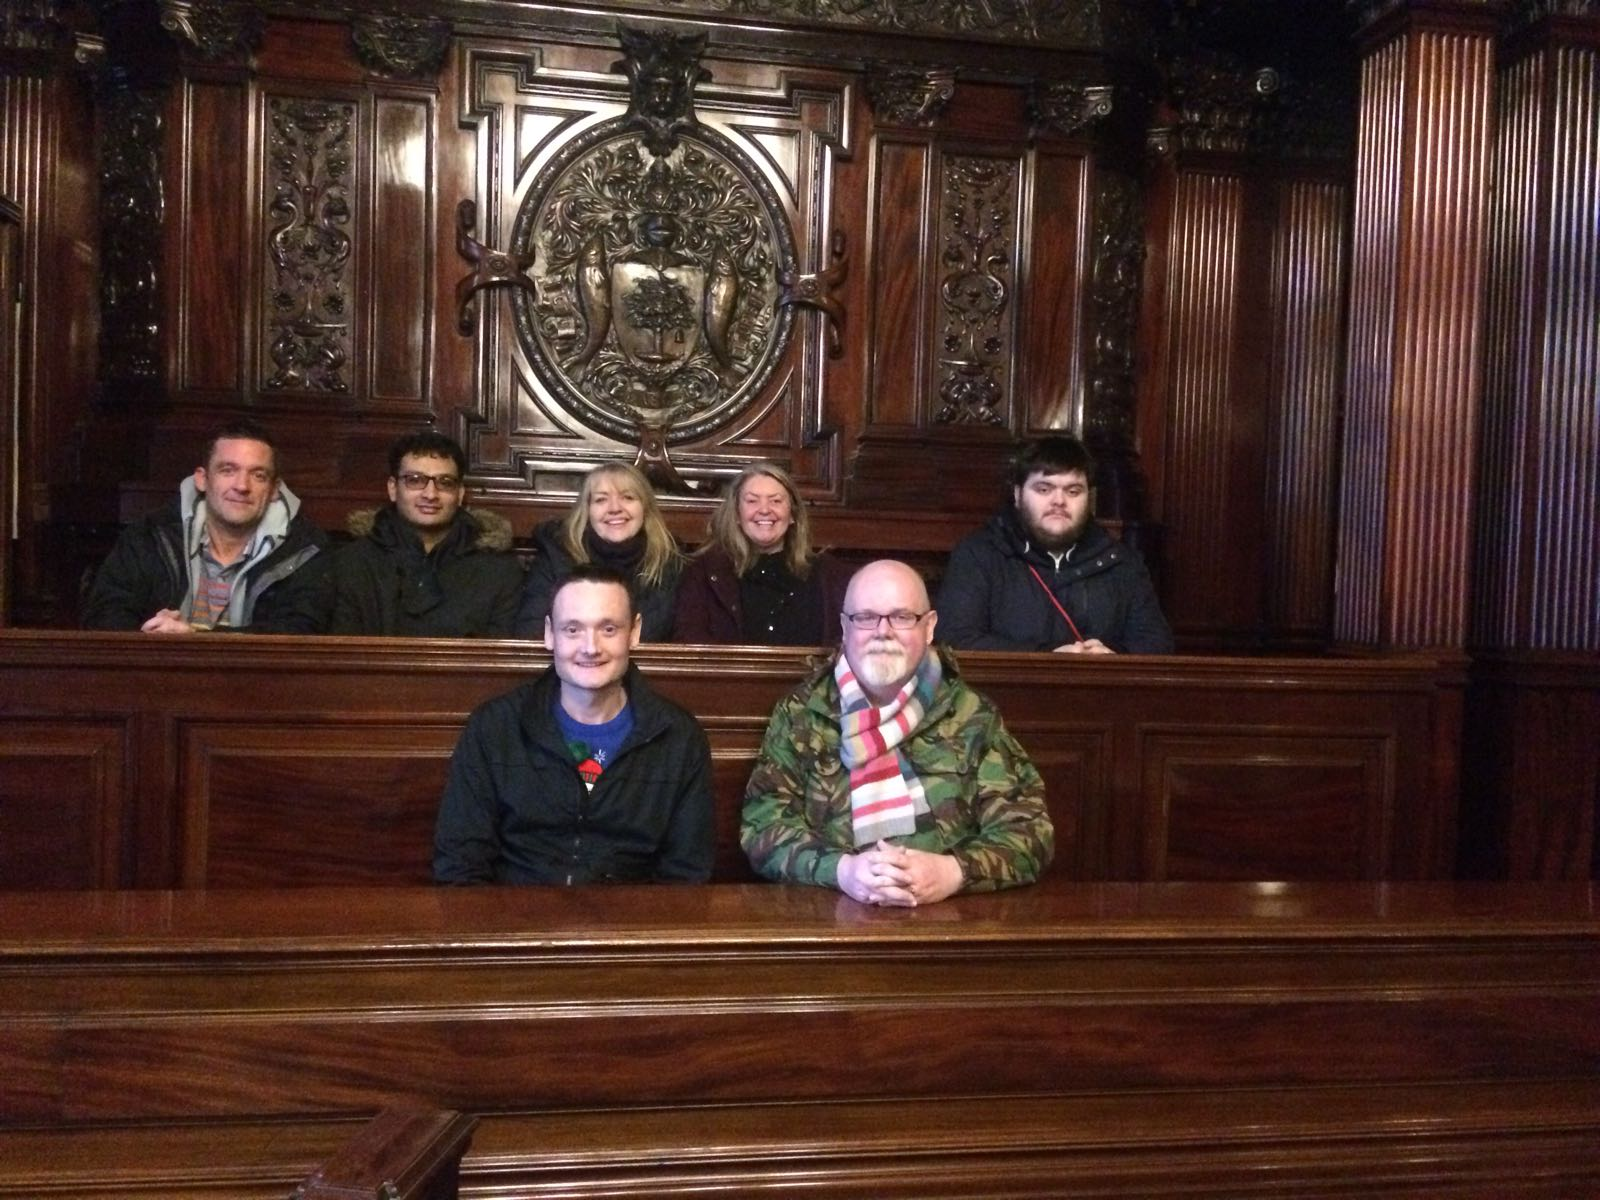 Group 1 at City Chambers 4